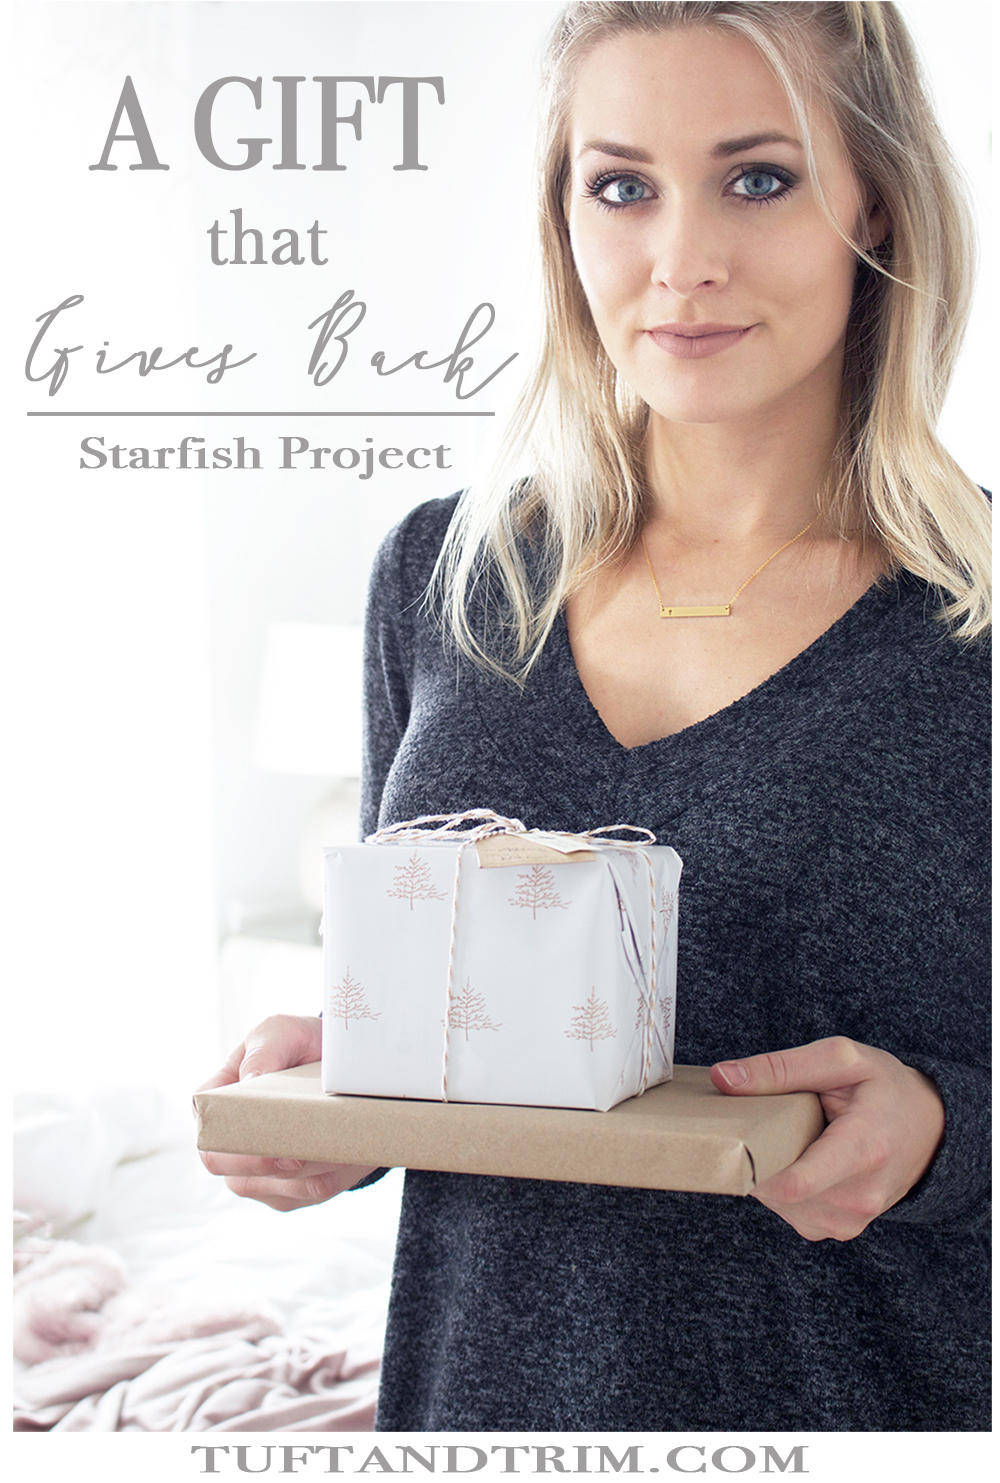 Starfish Project: A Gift that Gives Back. Jewelry with a purpose.